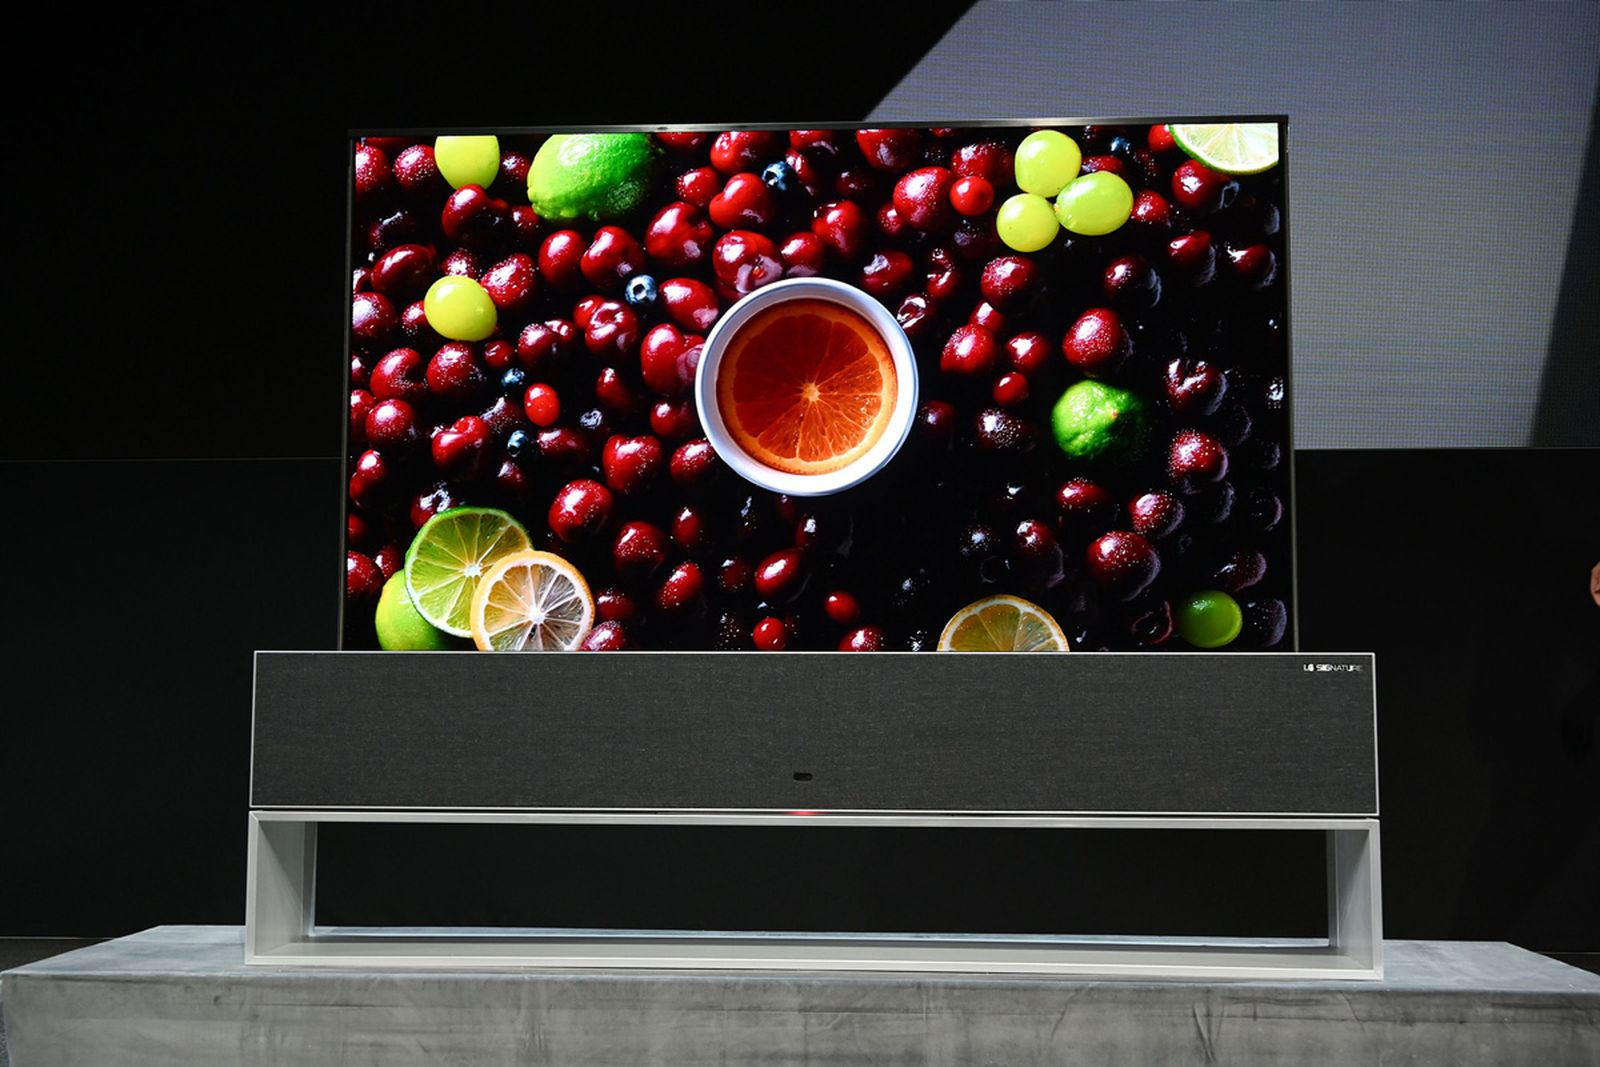 lg rollable oled tv CES 2019 ces2019 technology